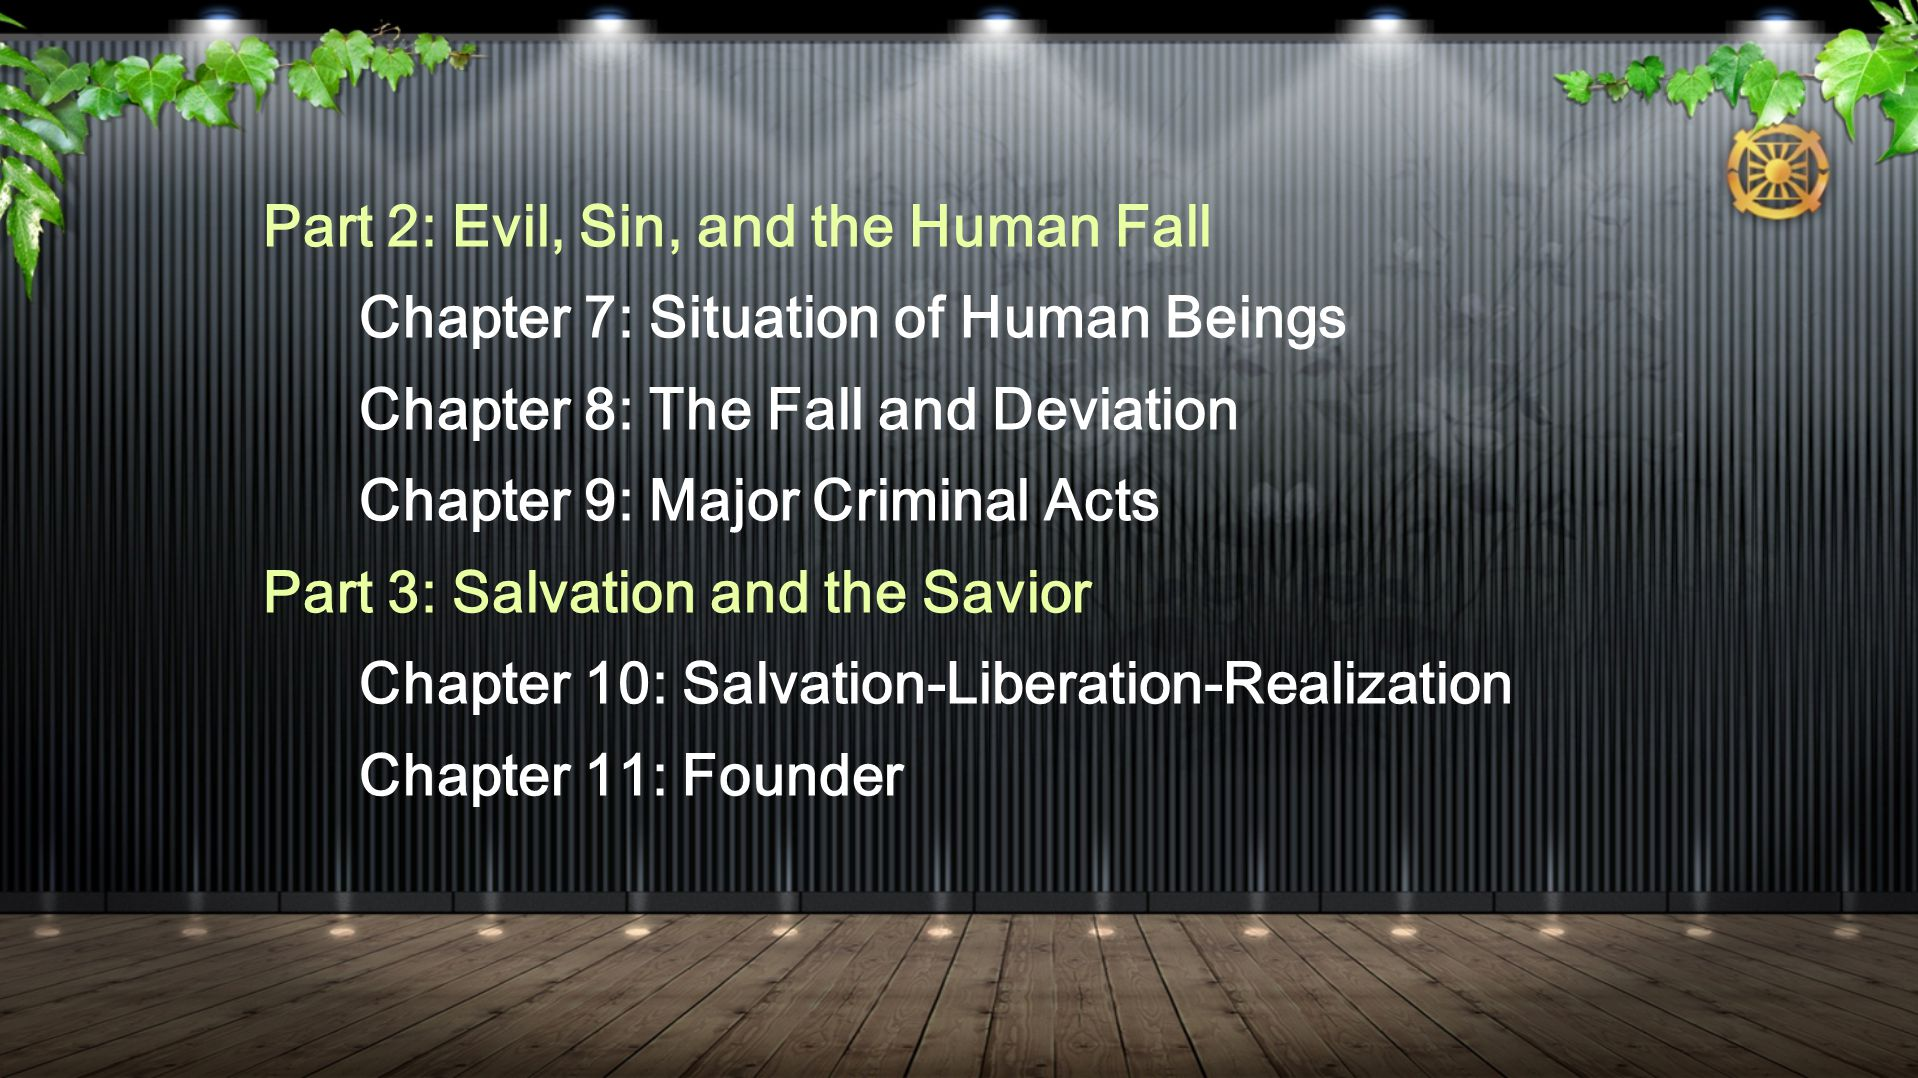 Part 2: Evil, Sin, and the Human Fall Chapter 7: Situation of Human Beings Chapter 8: The Fall and Deviation Chapter 9: Major Criminal Acts Part 3: Salvation and the Savior Chapter 10: Salvation-Liberation-Realization Chapter 11: Founder